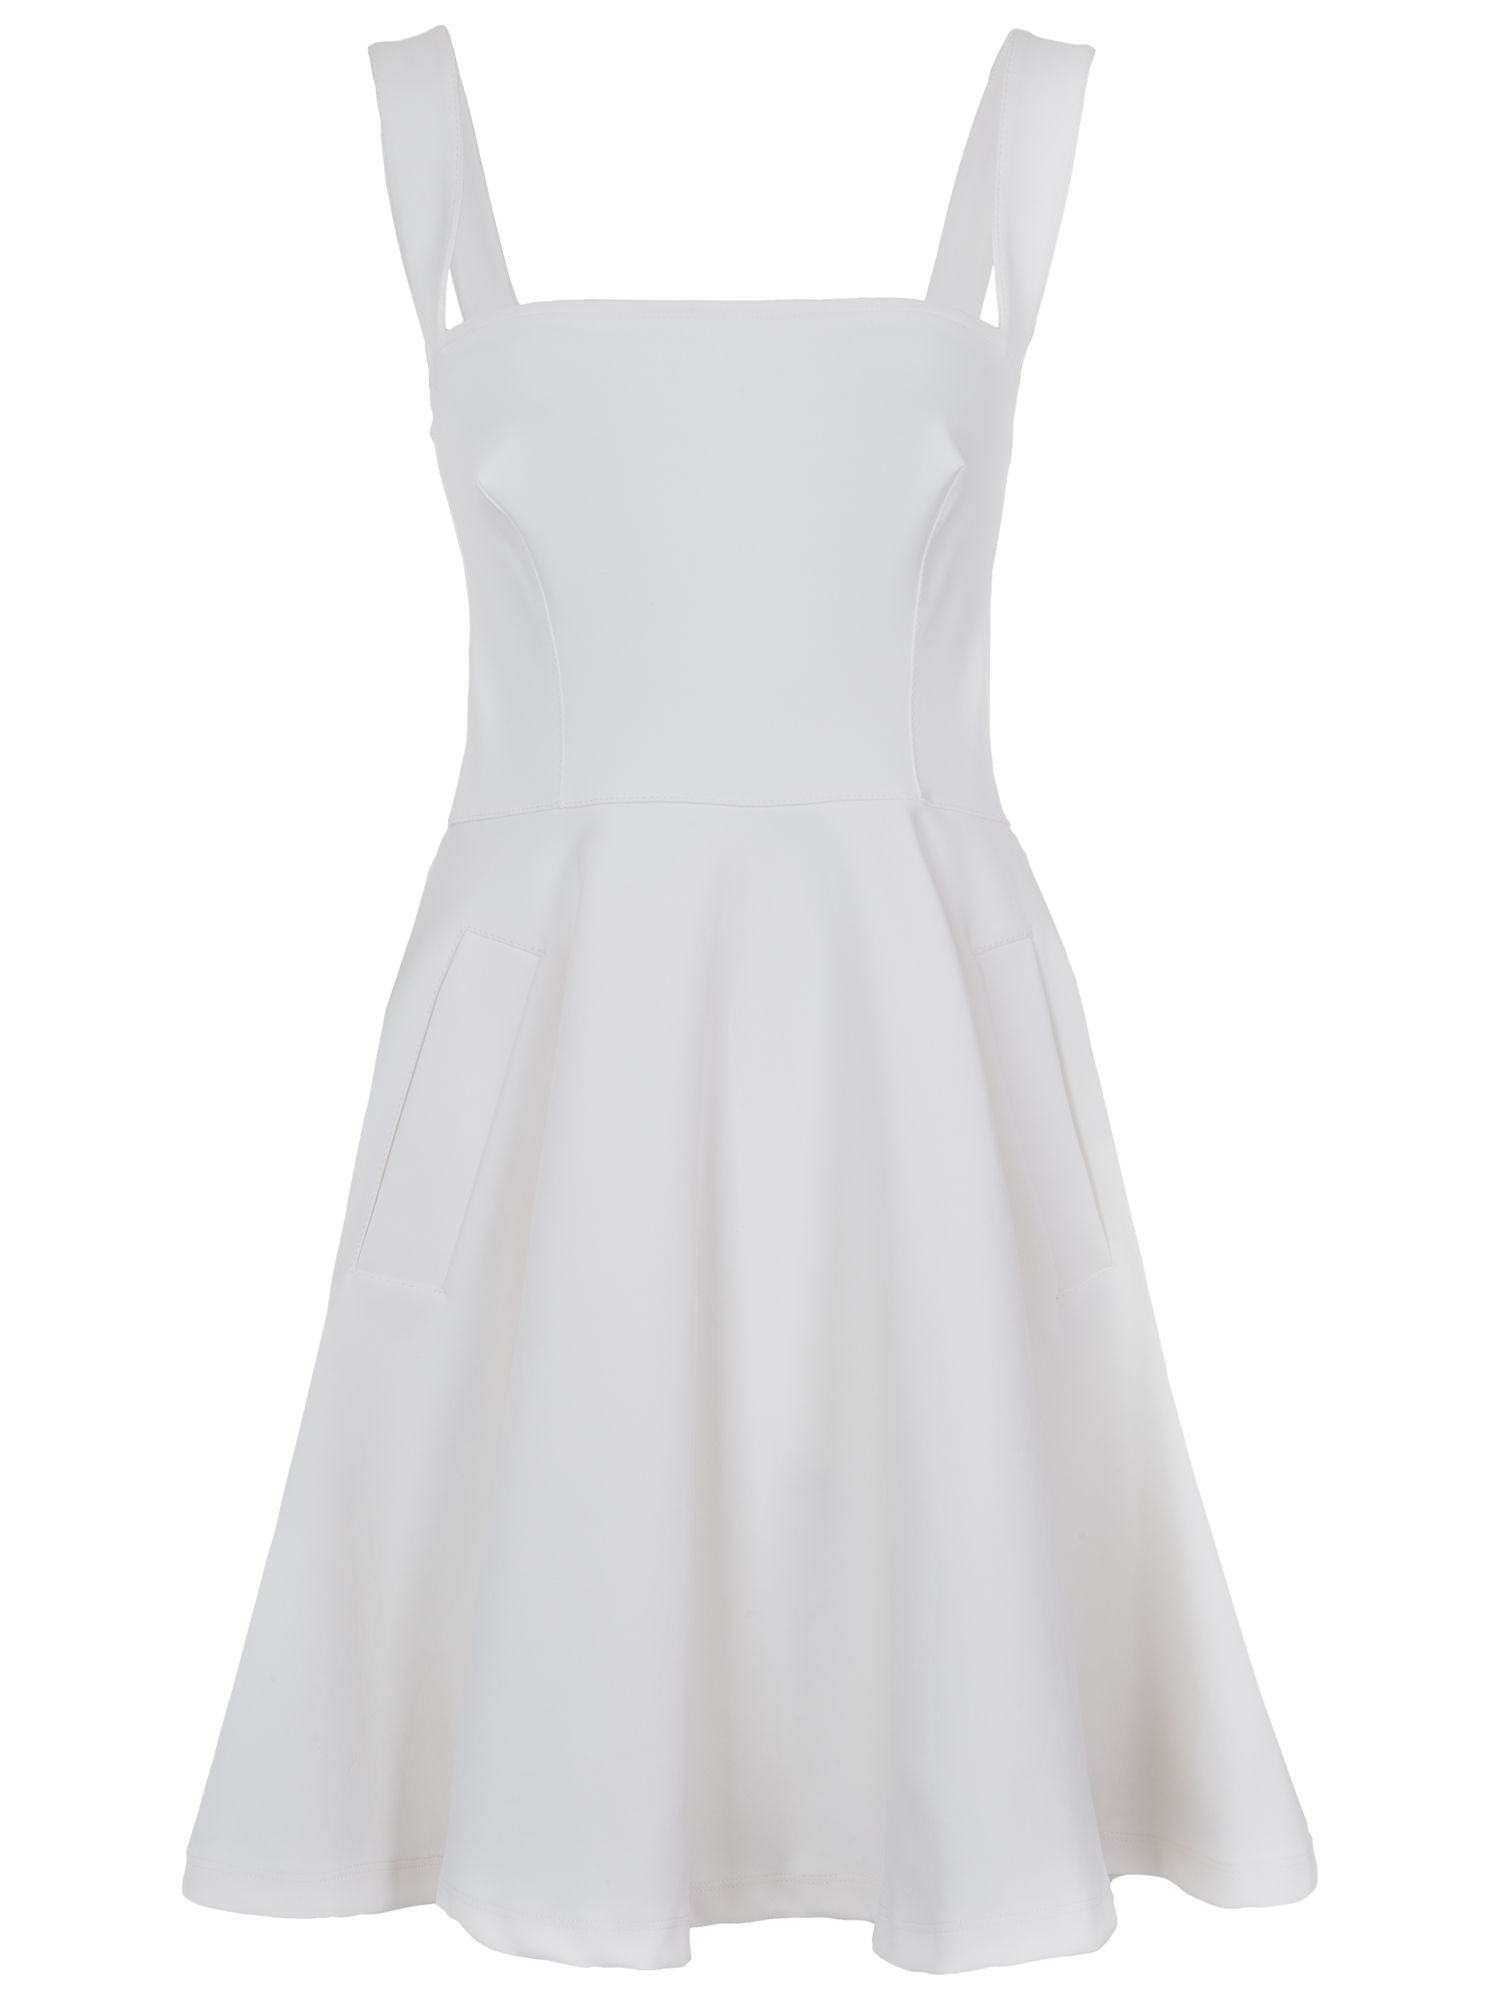 french connection sophia scuba strappy dress summer white, french, connection, sophia, scuba, strappy, dress, summer, white, french connection, 14|10|16|8|12|6, women, womens dresses, 1933226